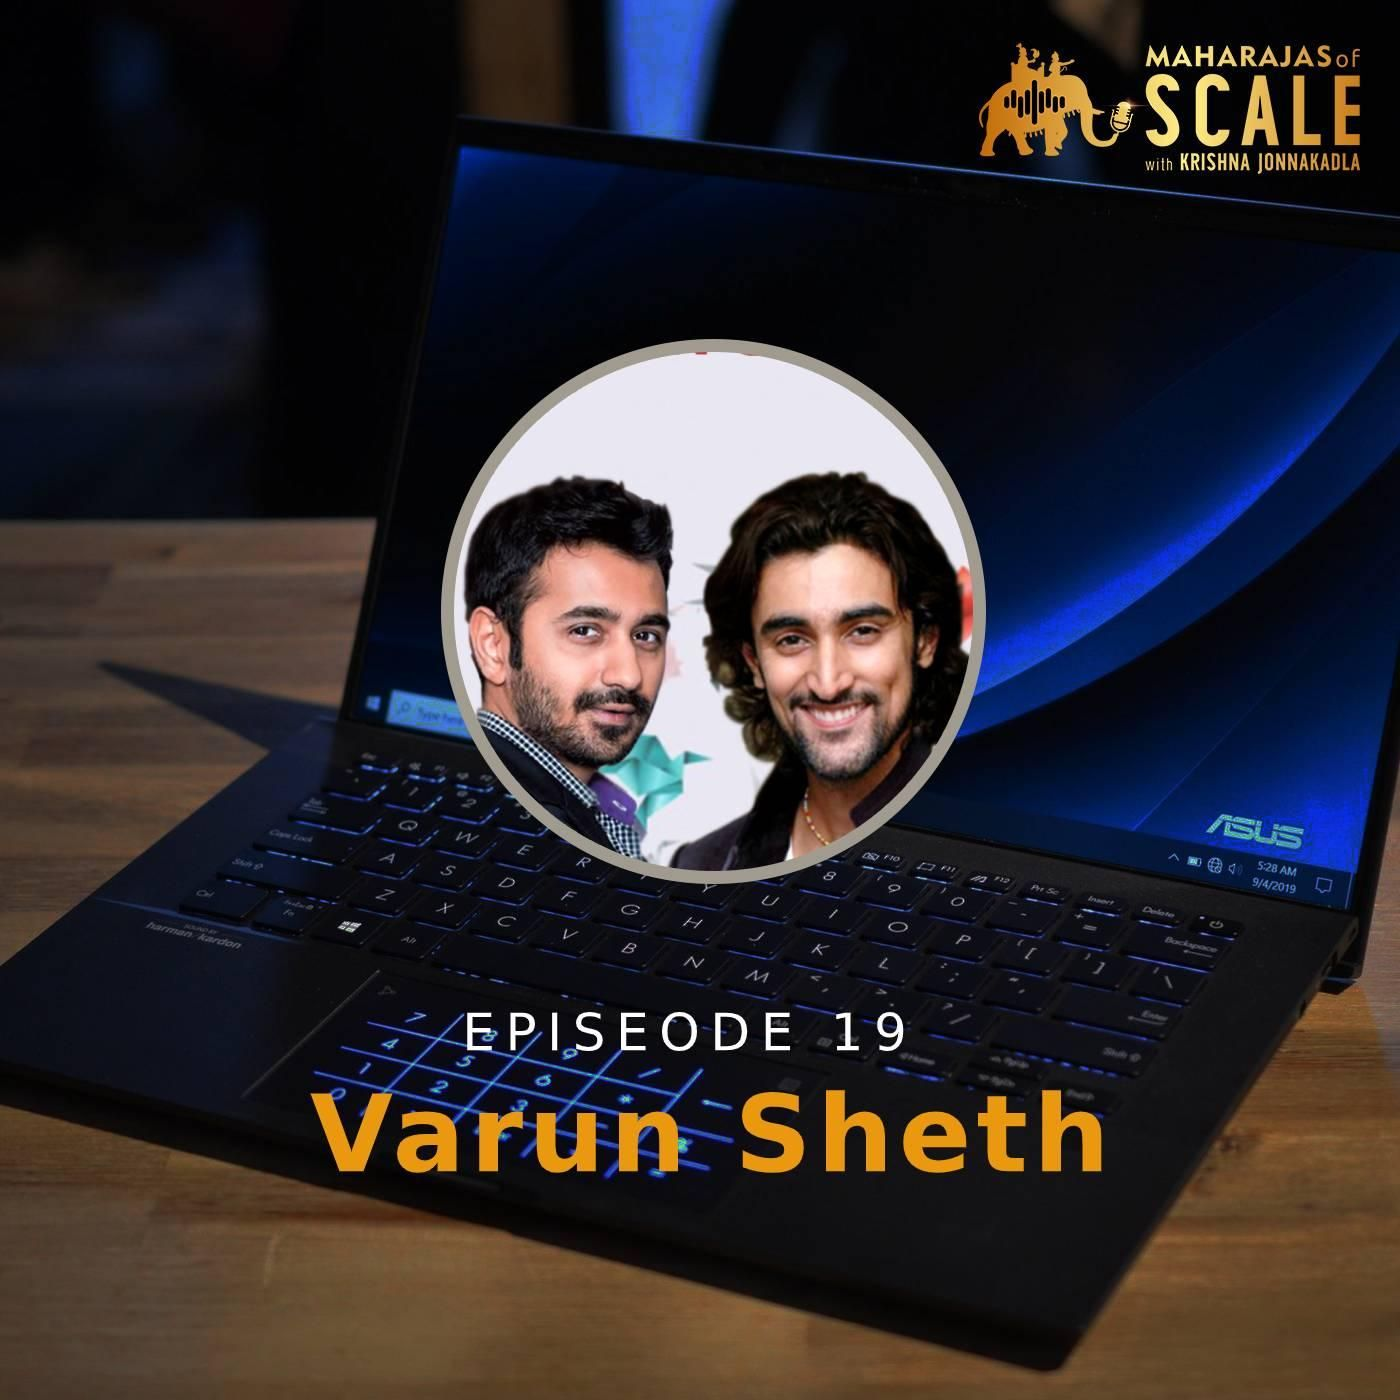 Ep. 19: Varun Sheth of Ketto - The Boy Who Harnessed The Internet to solve people's problems